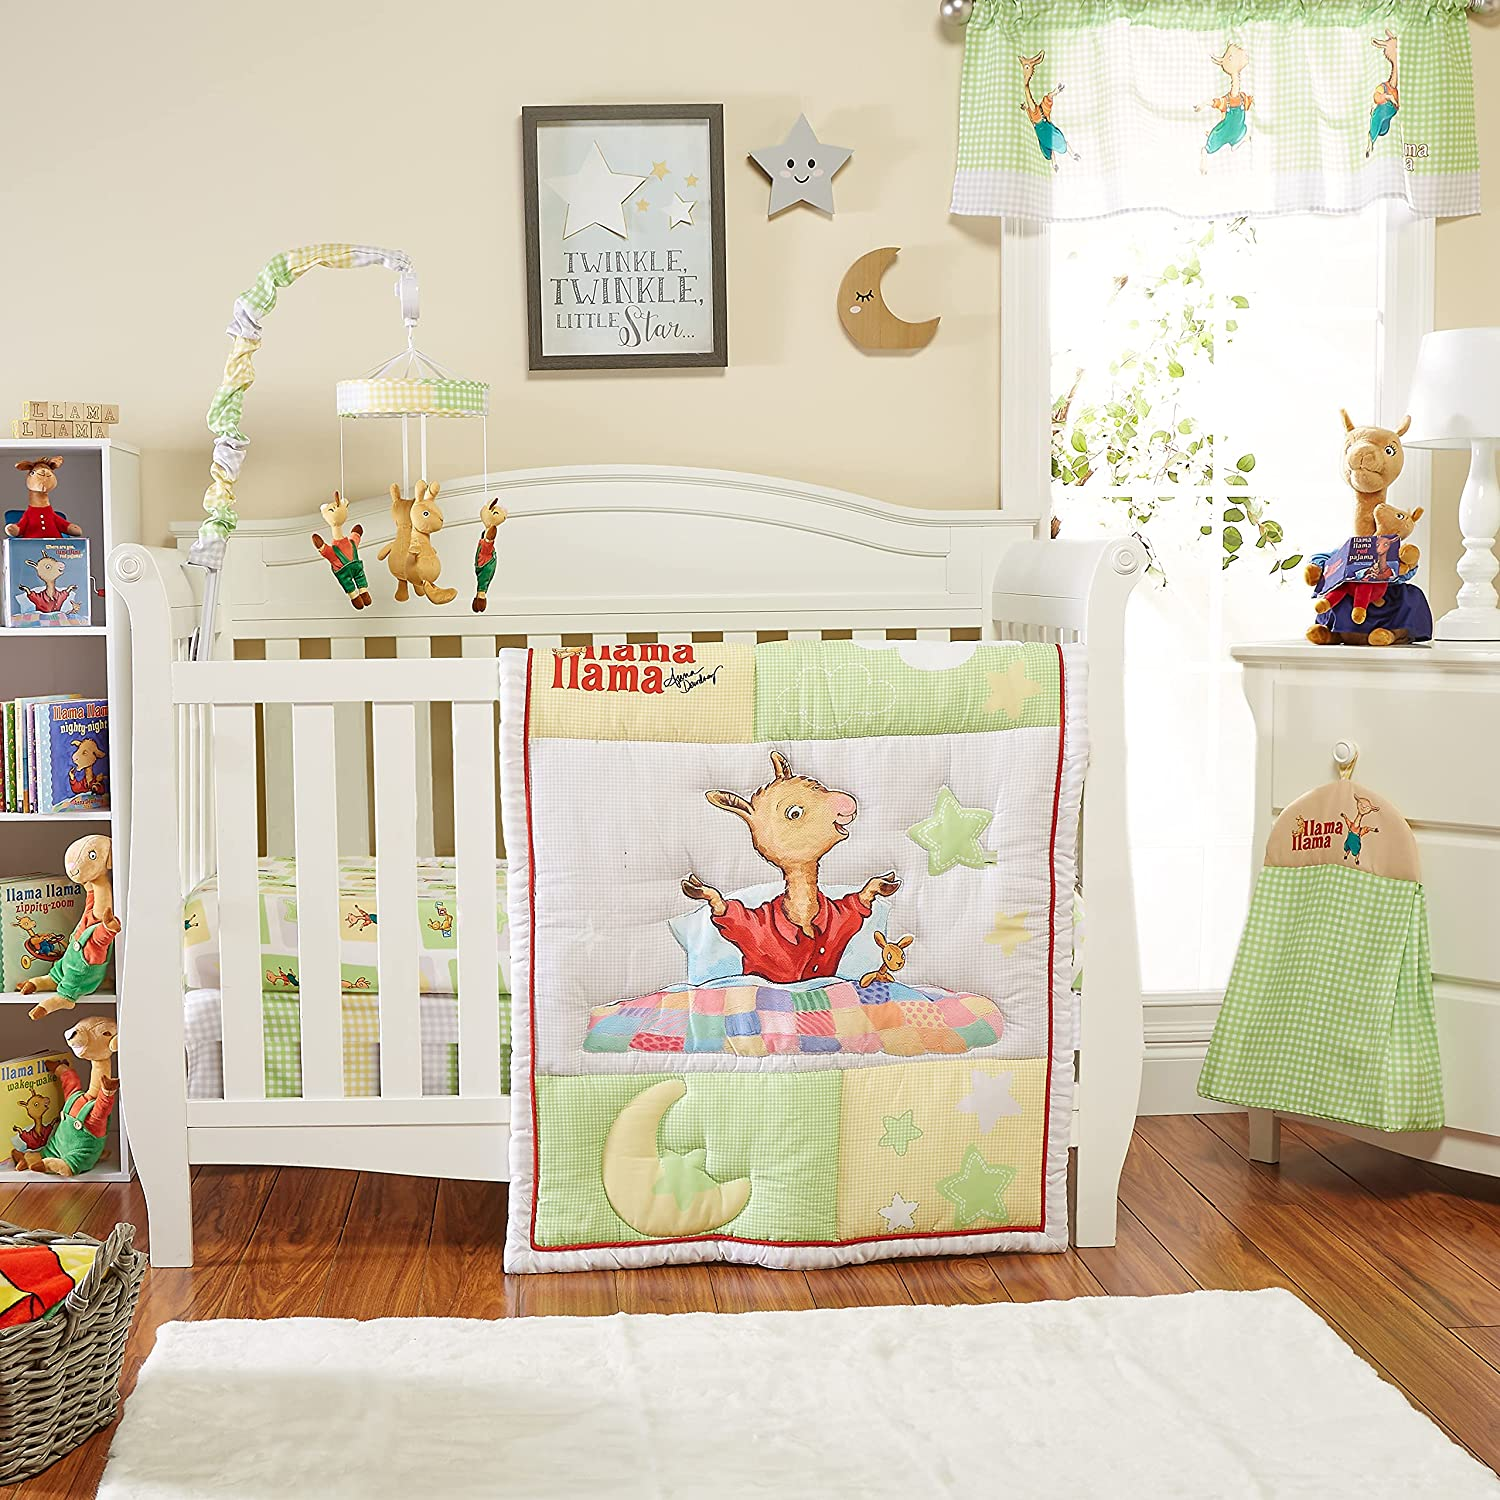 EVERYDAY KIDS Llama Llama 4 Pc Crib Bedding and Nursery Set Includes Baby Bed Quilt, Fitted Sheet, Dust Ruffle and Diaper Stacker; Sweet Images of Llama Llama, Moon and Stars for Boys and Girls